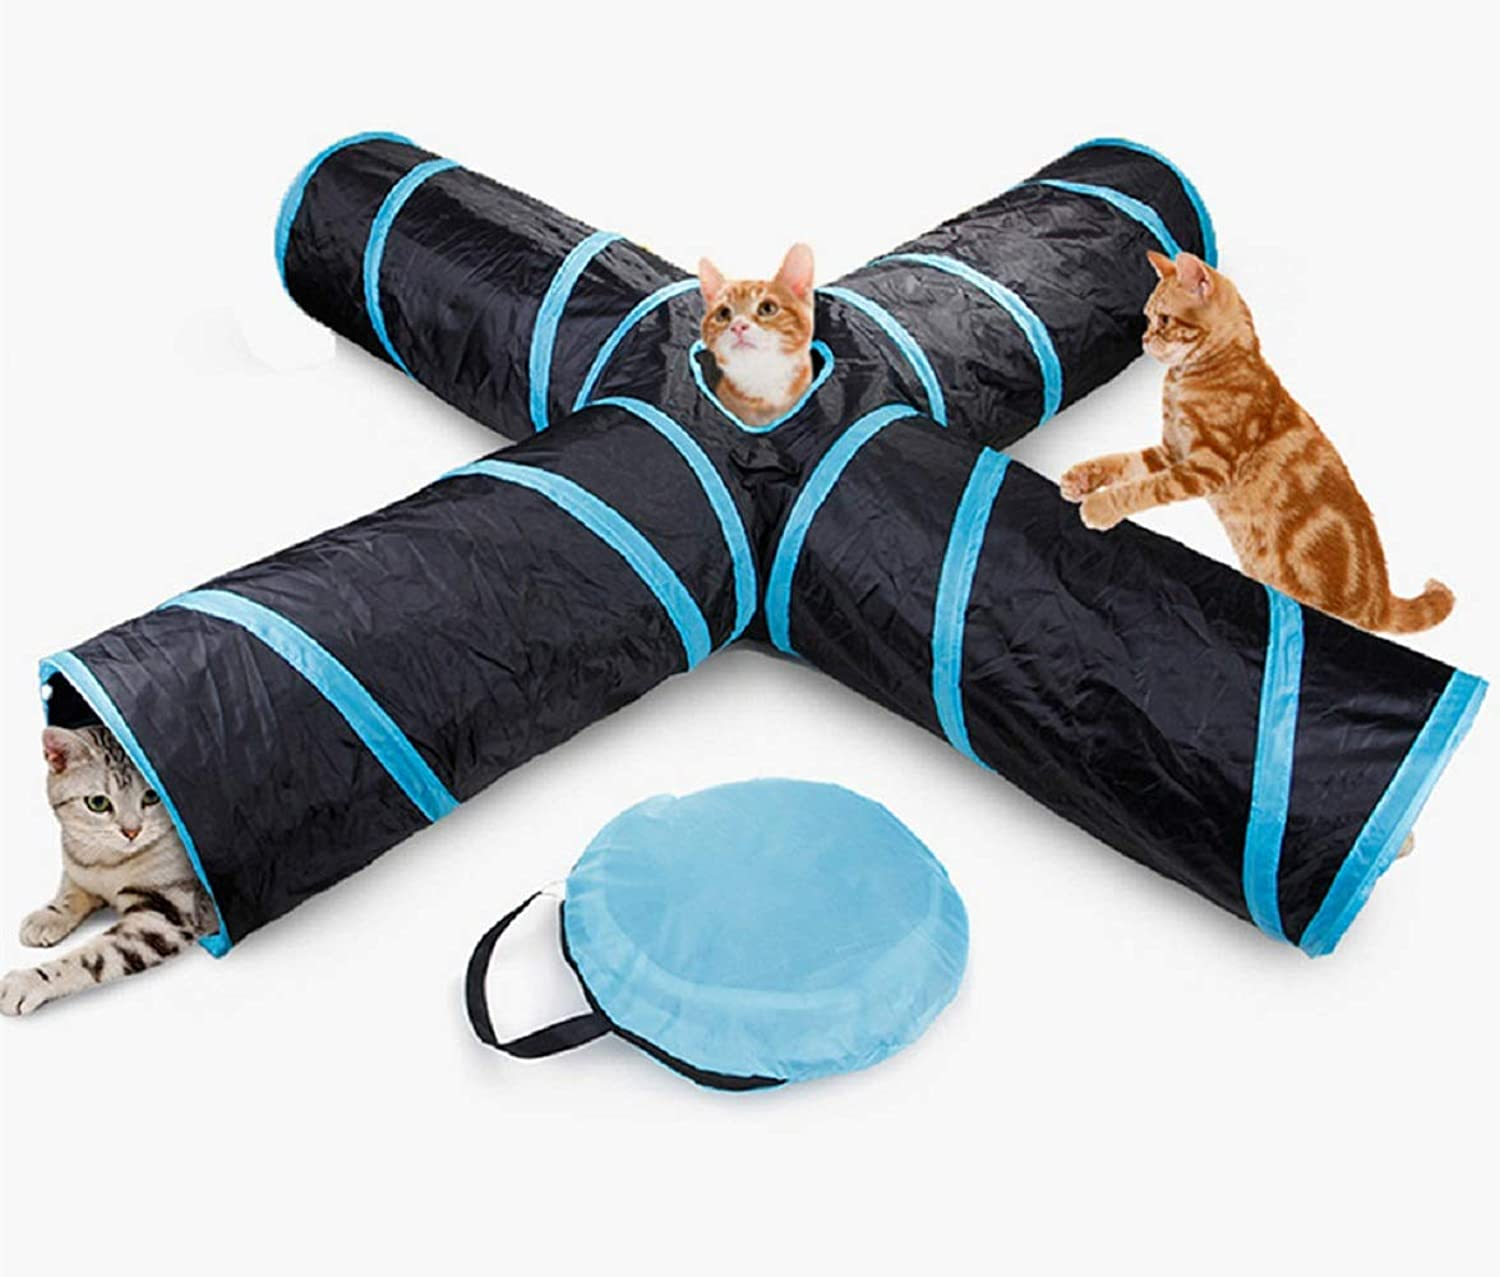 ForuMall Cat Tunnel Toy Upgraded Collapsible 4 Way Pet Play Tunnel Tube Storage Bag & Cat Toys